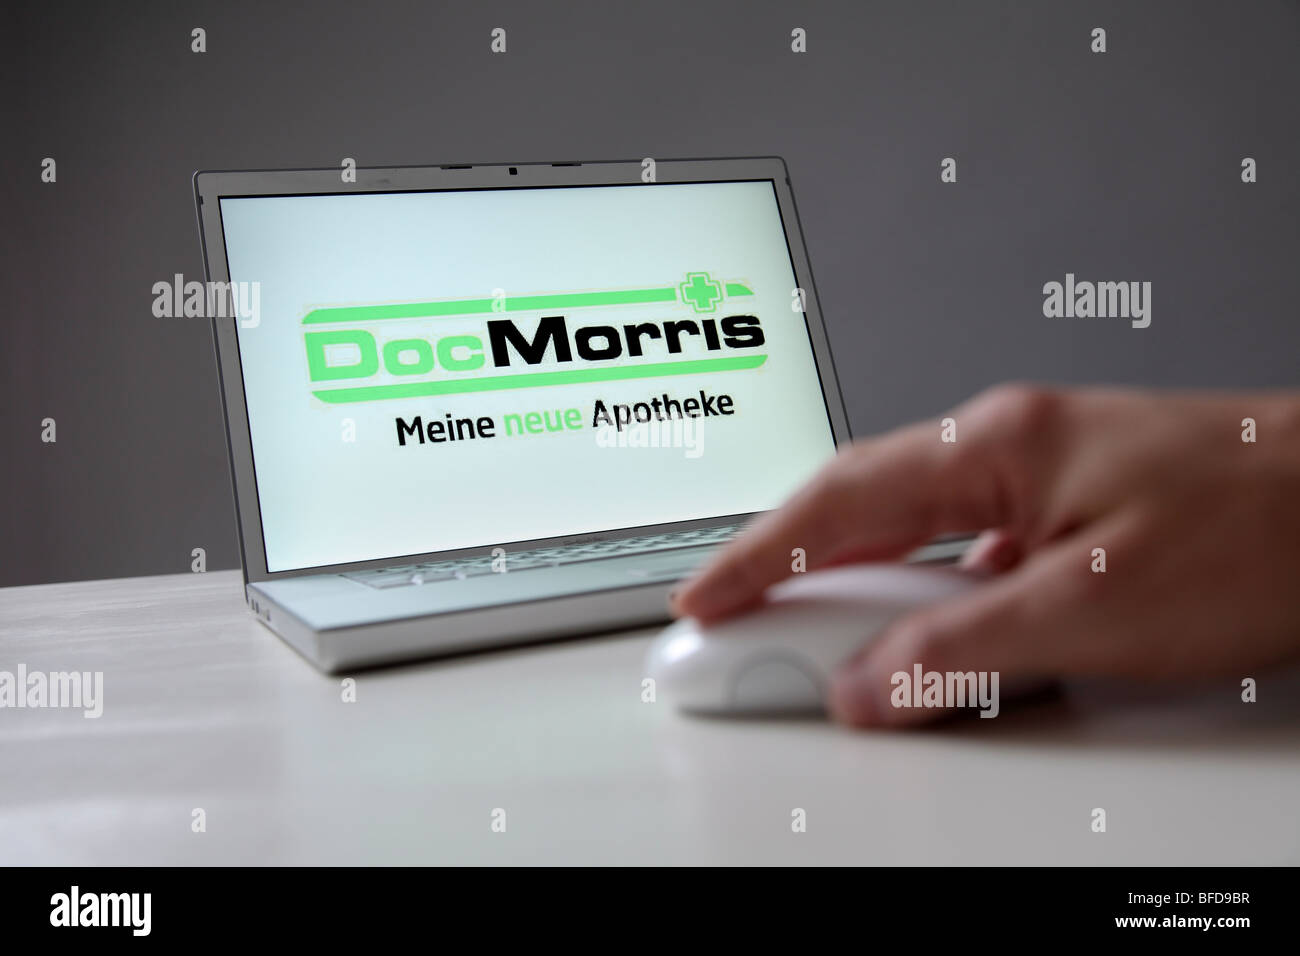 DocMorris company logo on computer screen. Symbol: Buying of medicine at the online pharmacy DocMorris - Stock Image